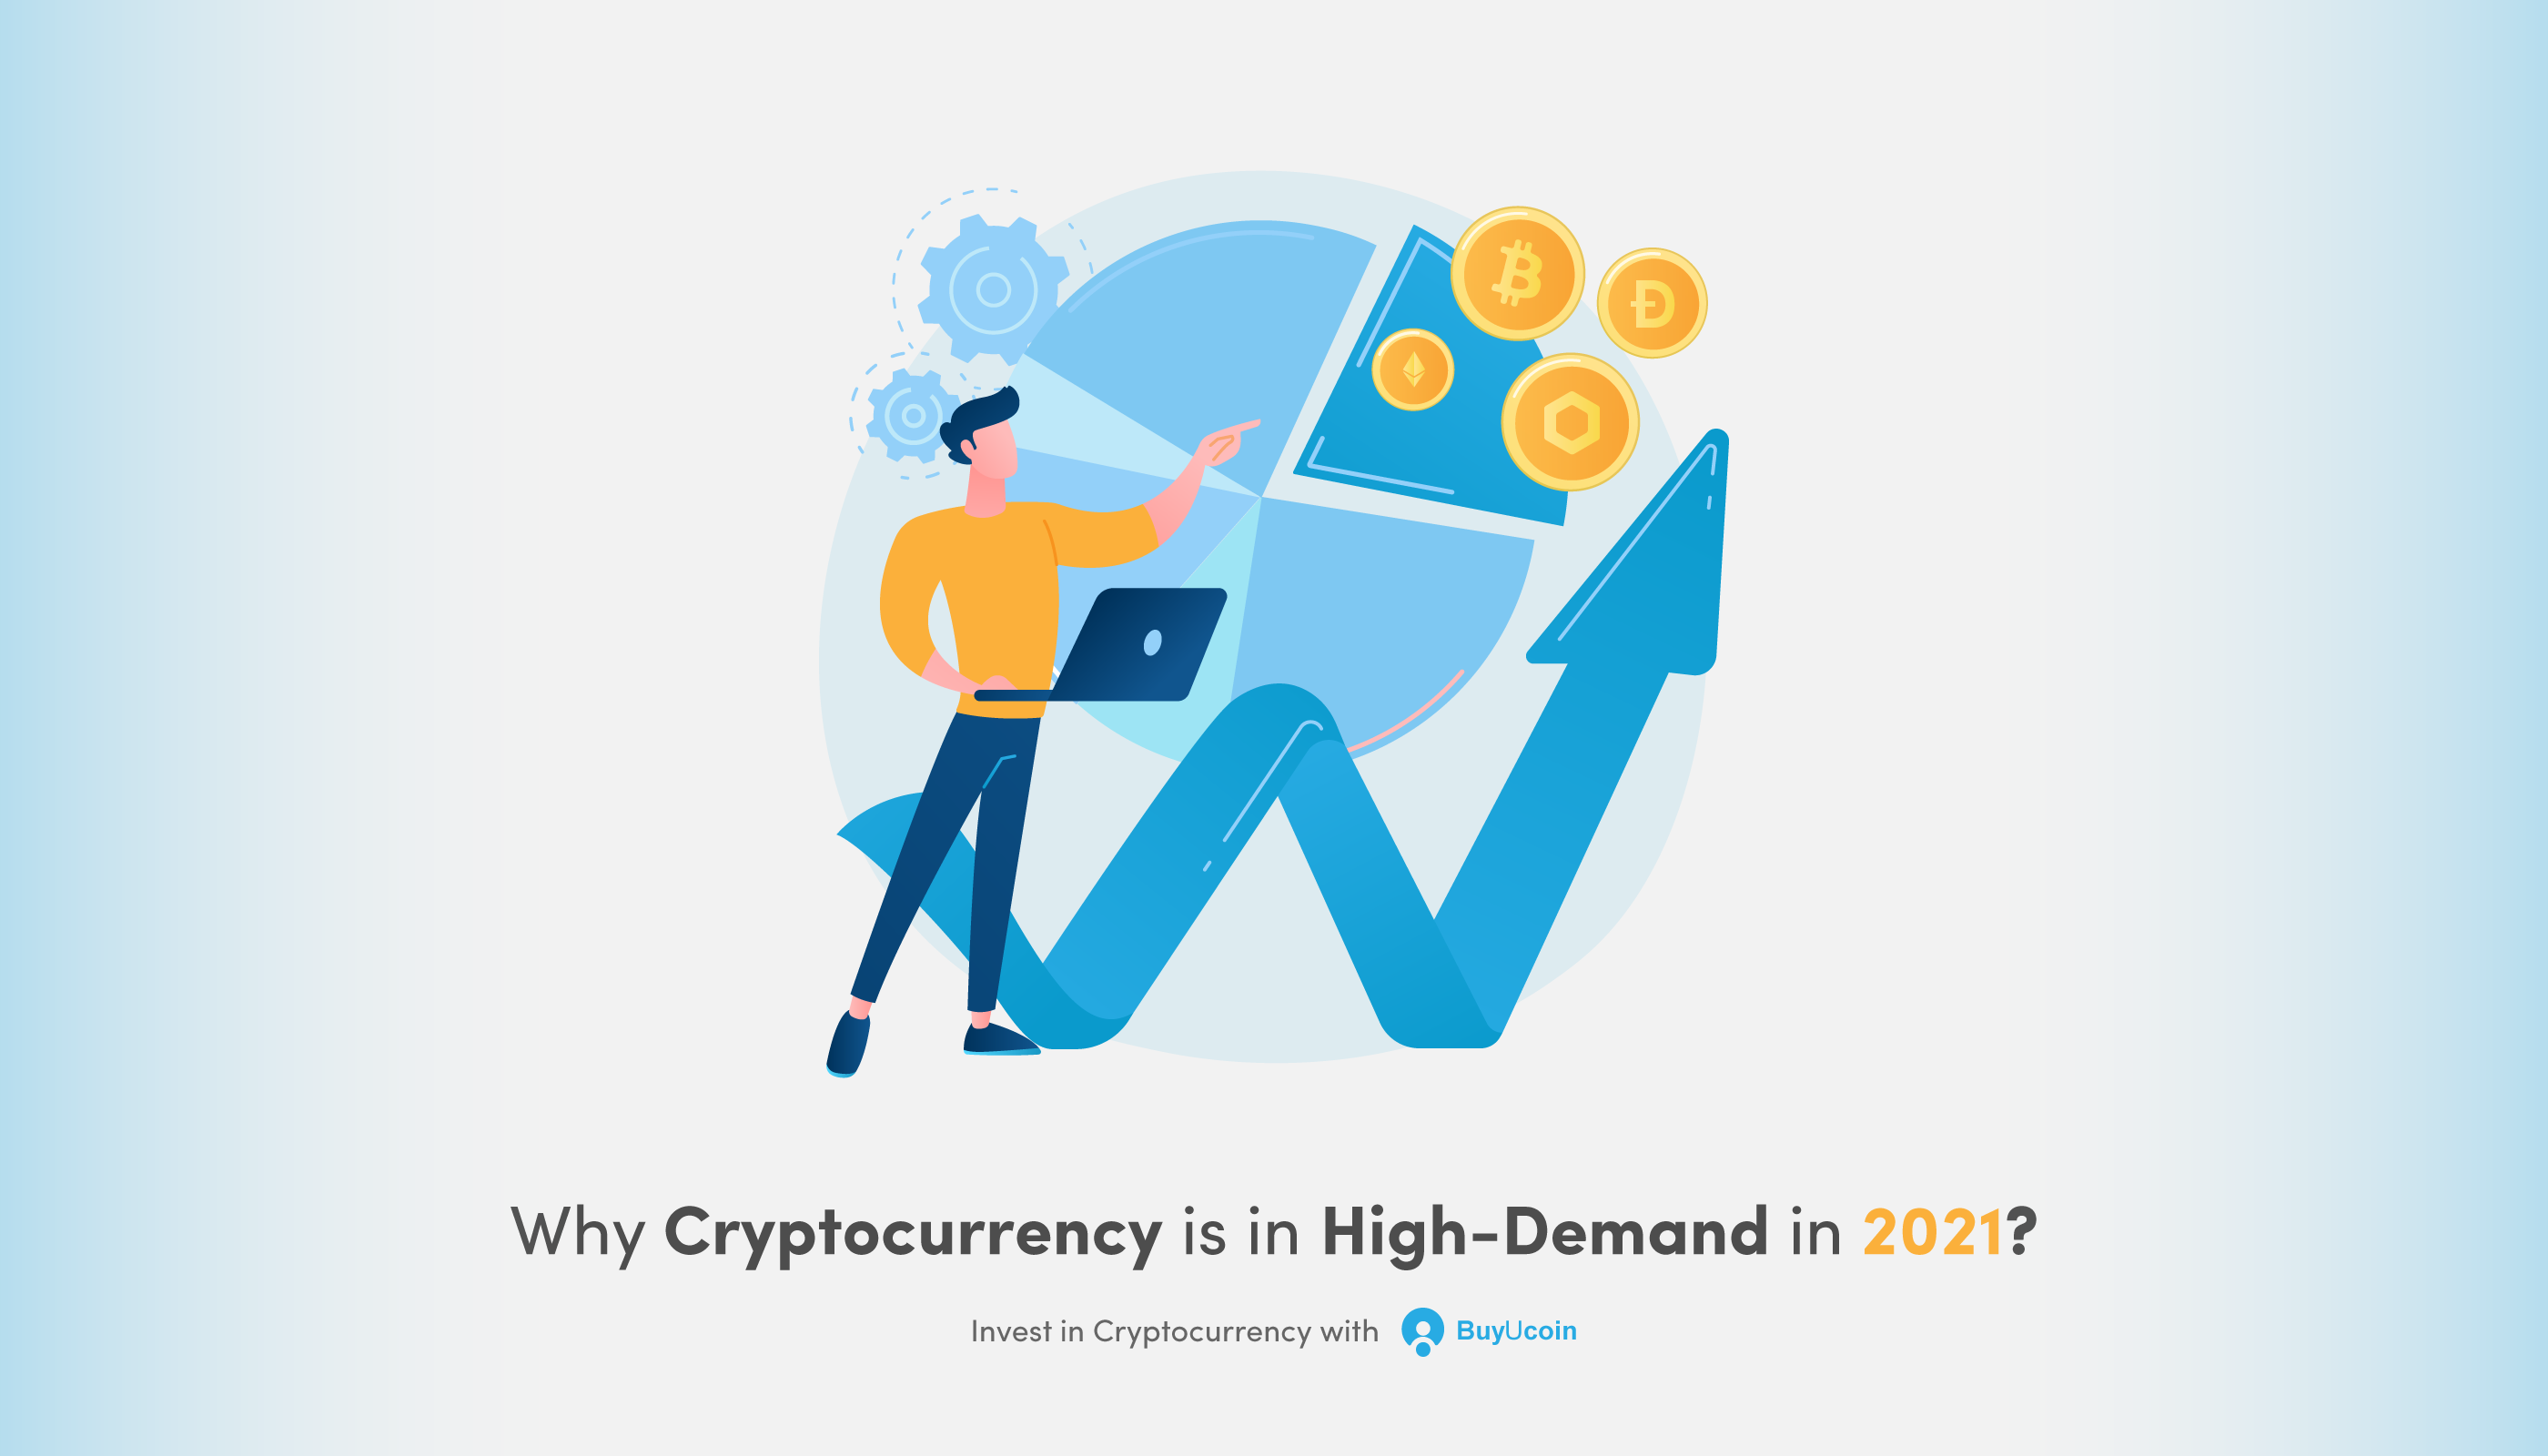 Why cryptocurrency is in high demand?